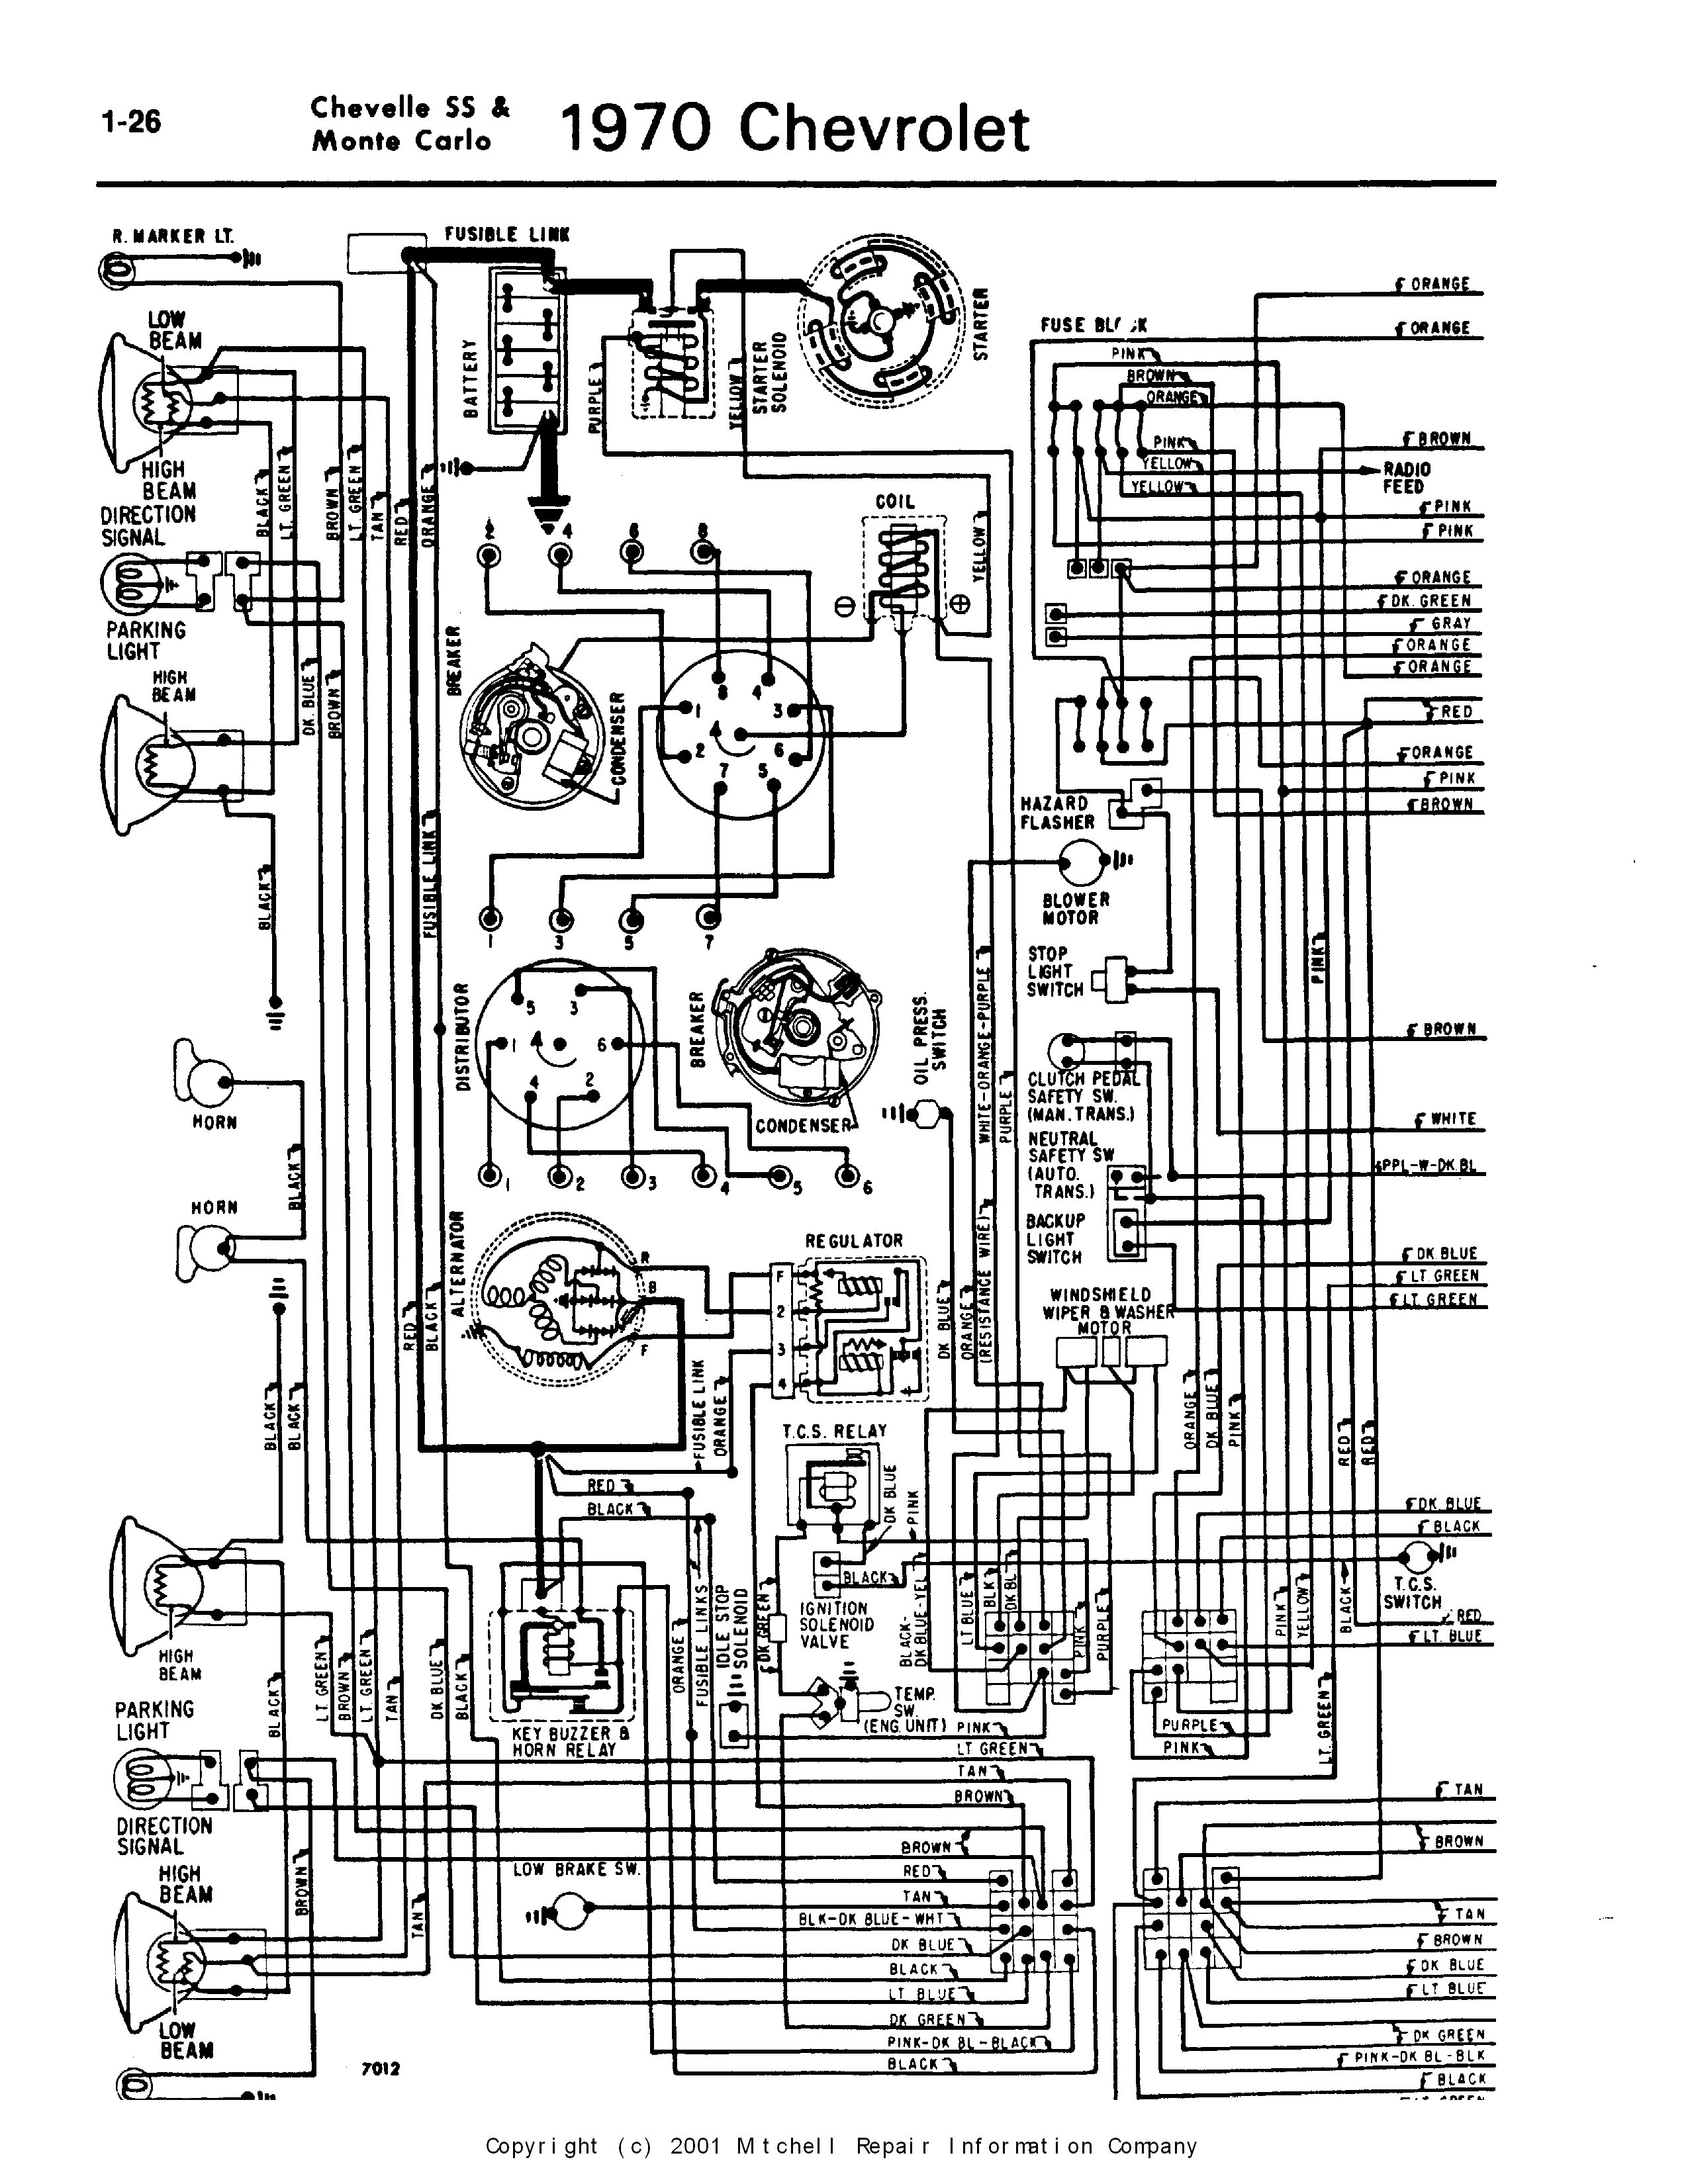 wiring diagram for 70 chevelle wiring diagram project  1969 chevelle wiring diagram manuals opgi #8